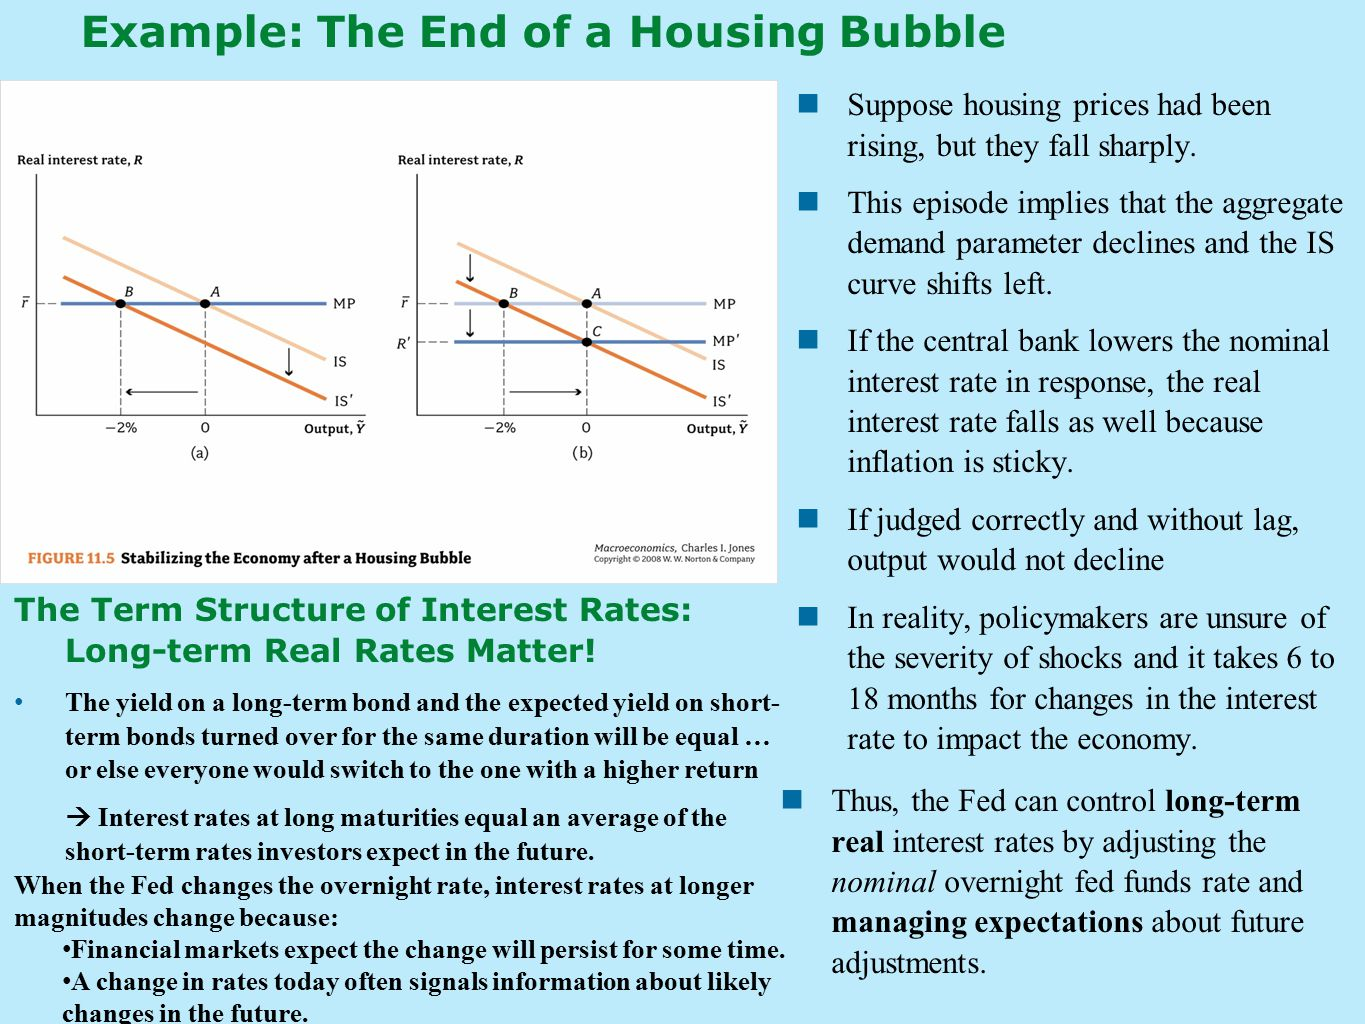 Example: The End of a Housing Bubble